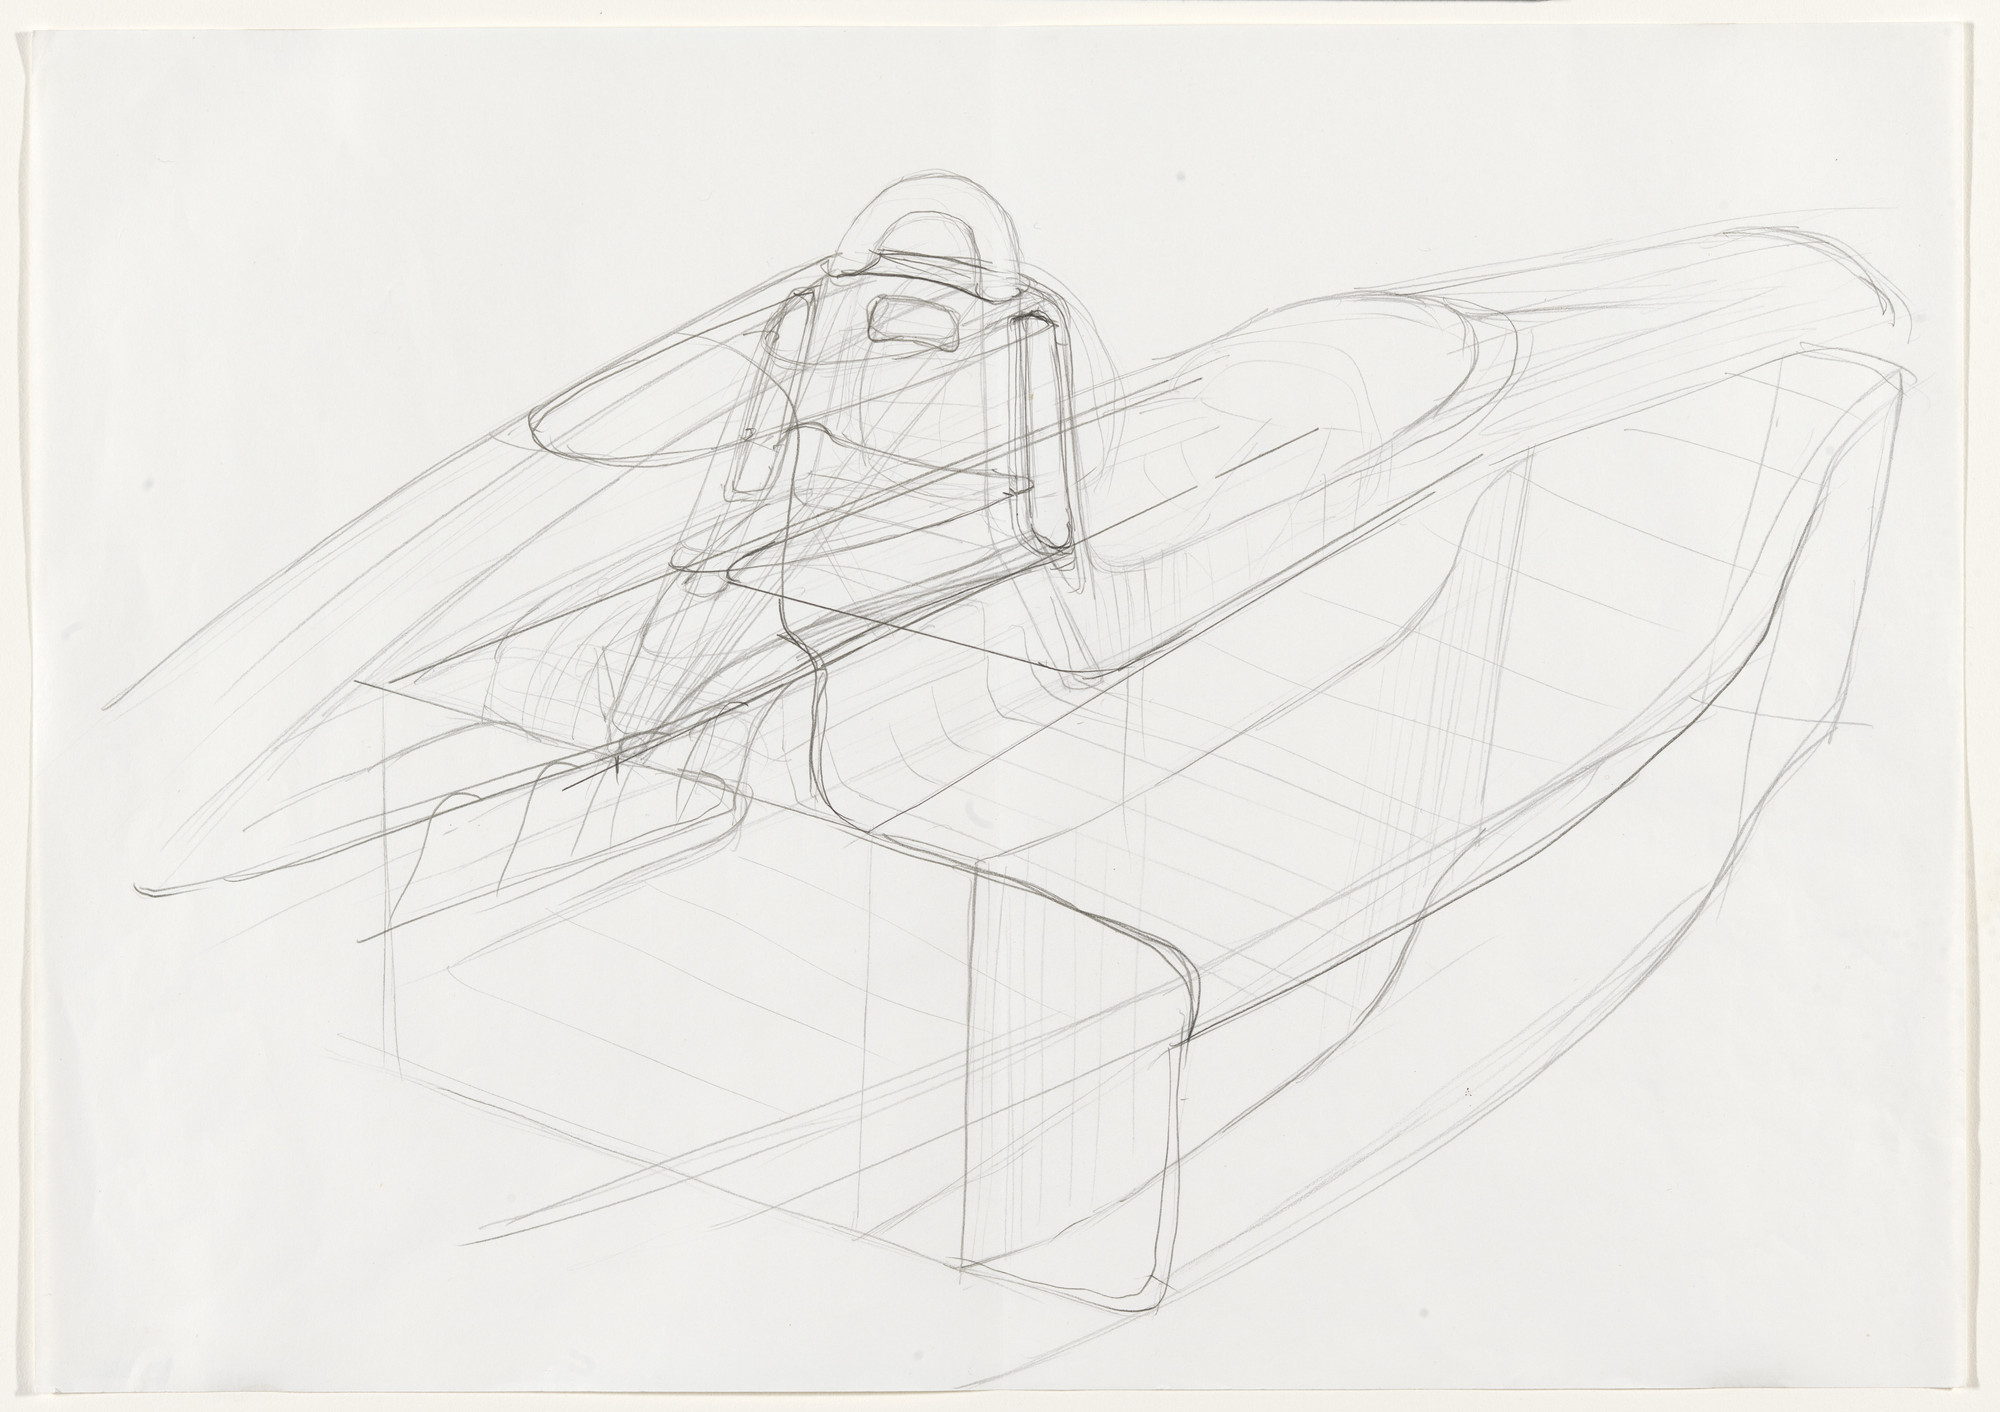 John Barnard. Sketch for body joints of Formula 1 car, Model #639. 1987